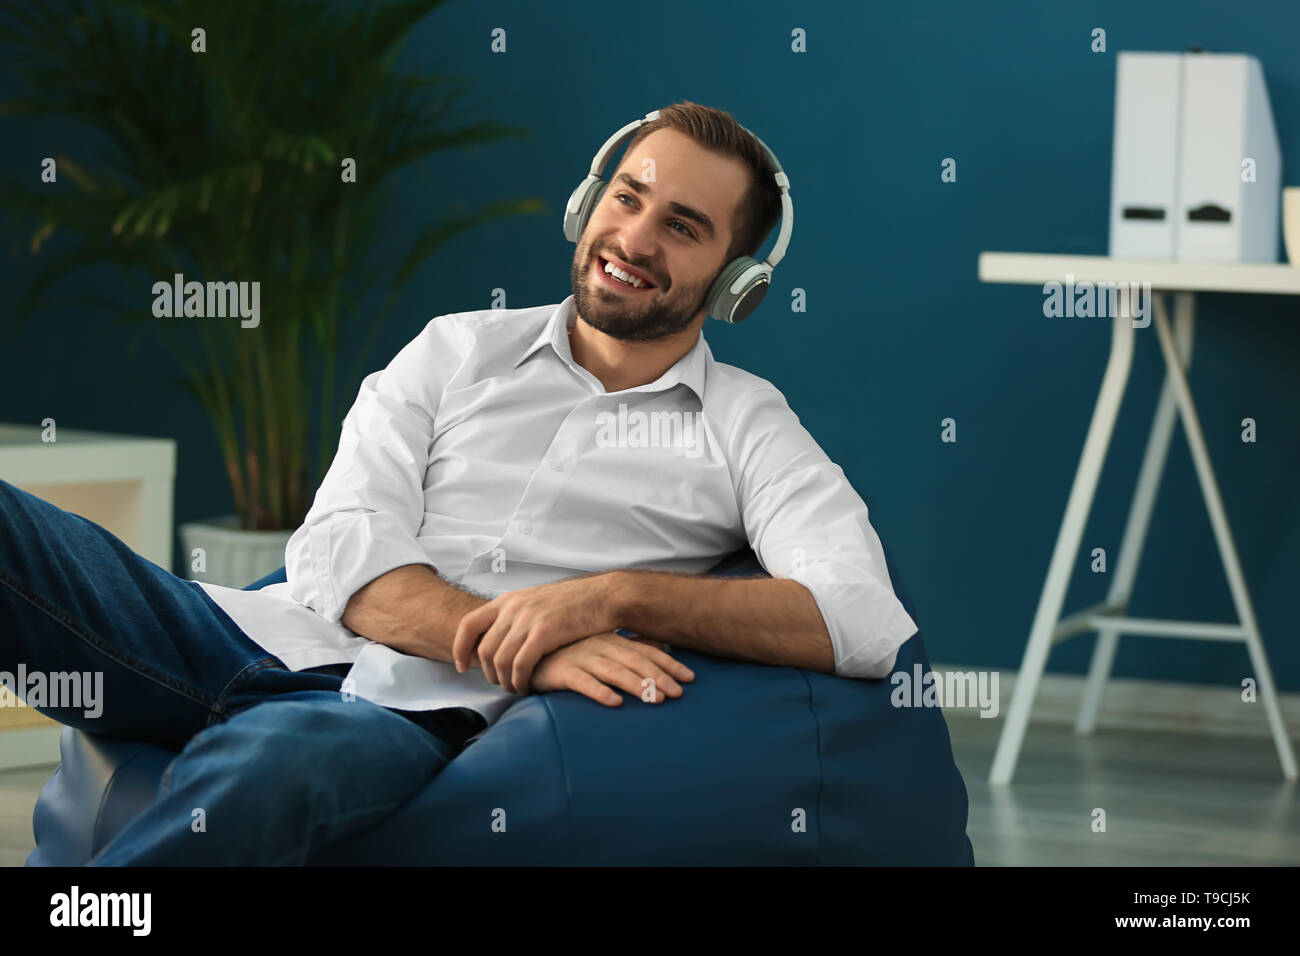 Young businessman with headphones sitting on beanbag chair in office - Stock Image